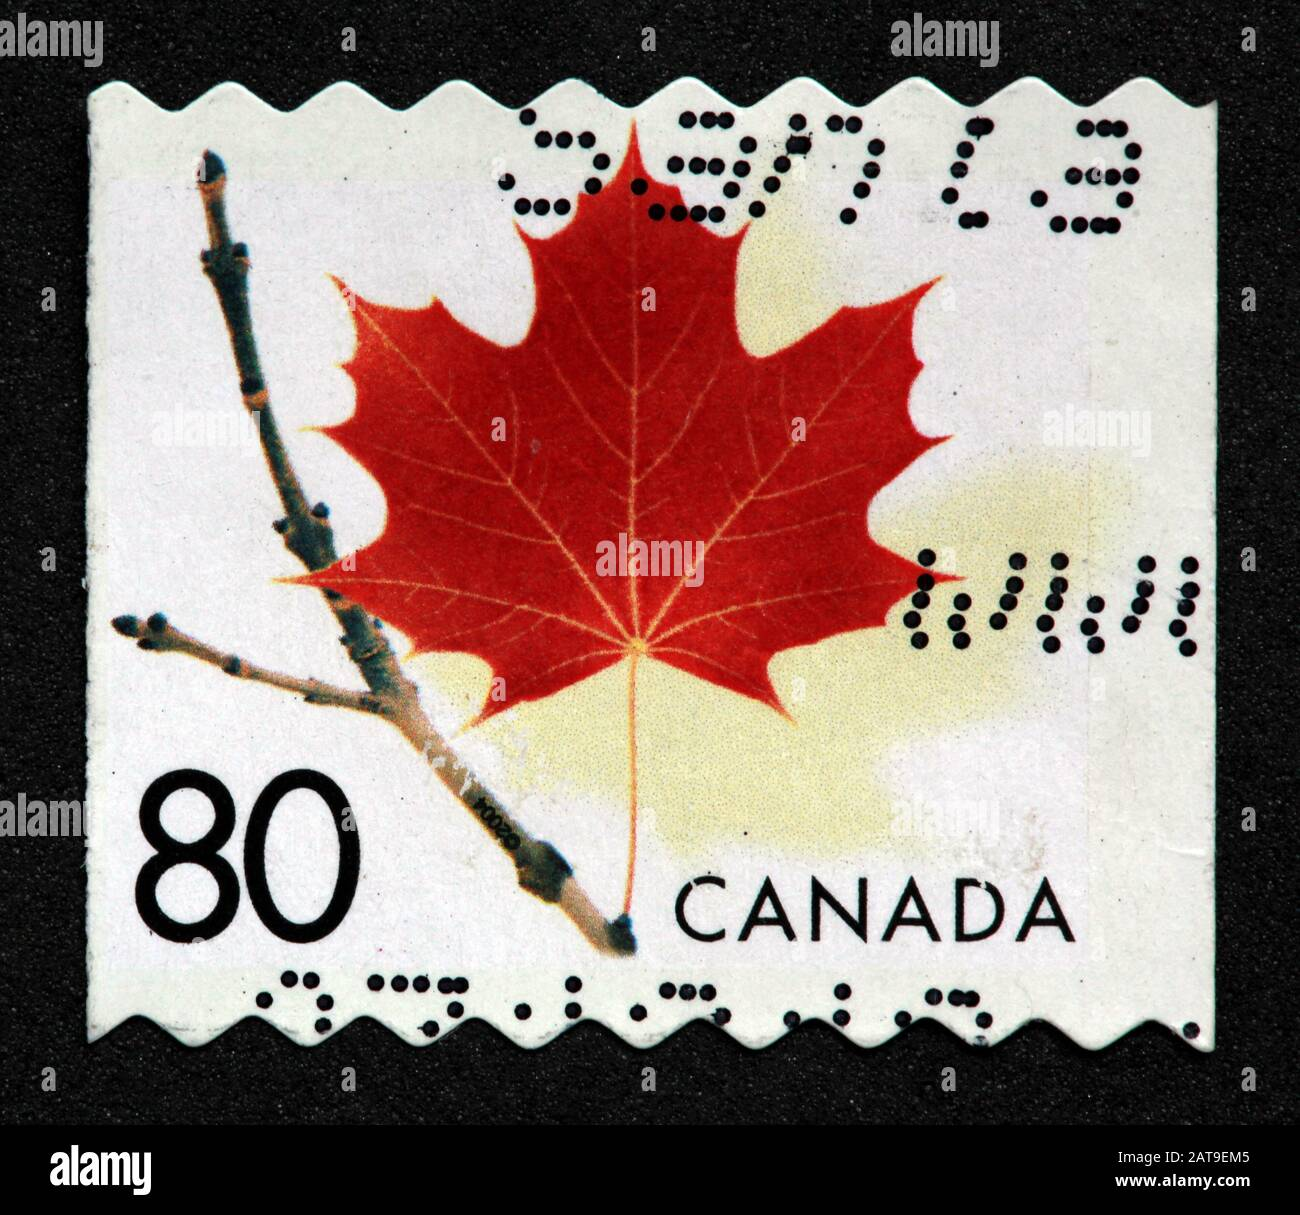 Canadian Stamp, Canada Stamp, Canada Post,used stamp, Canada, Maple Leaf, autumn, 80c, 80cents Stock Photo